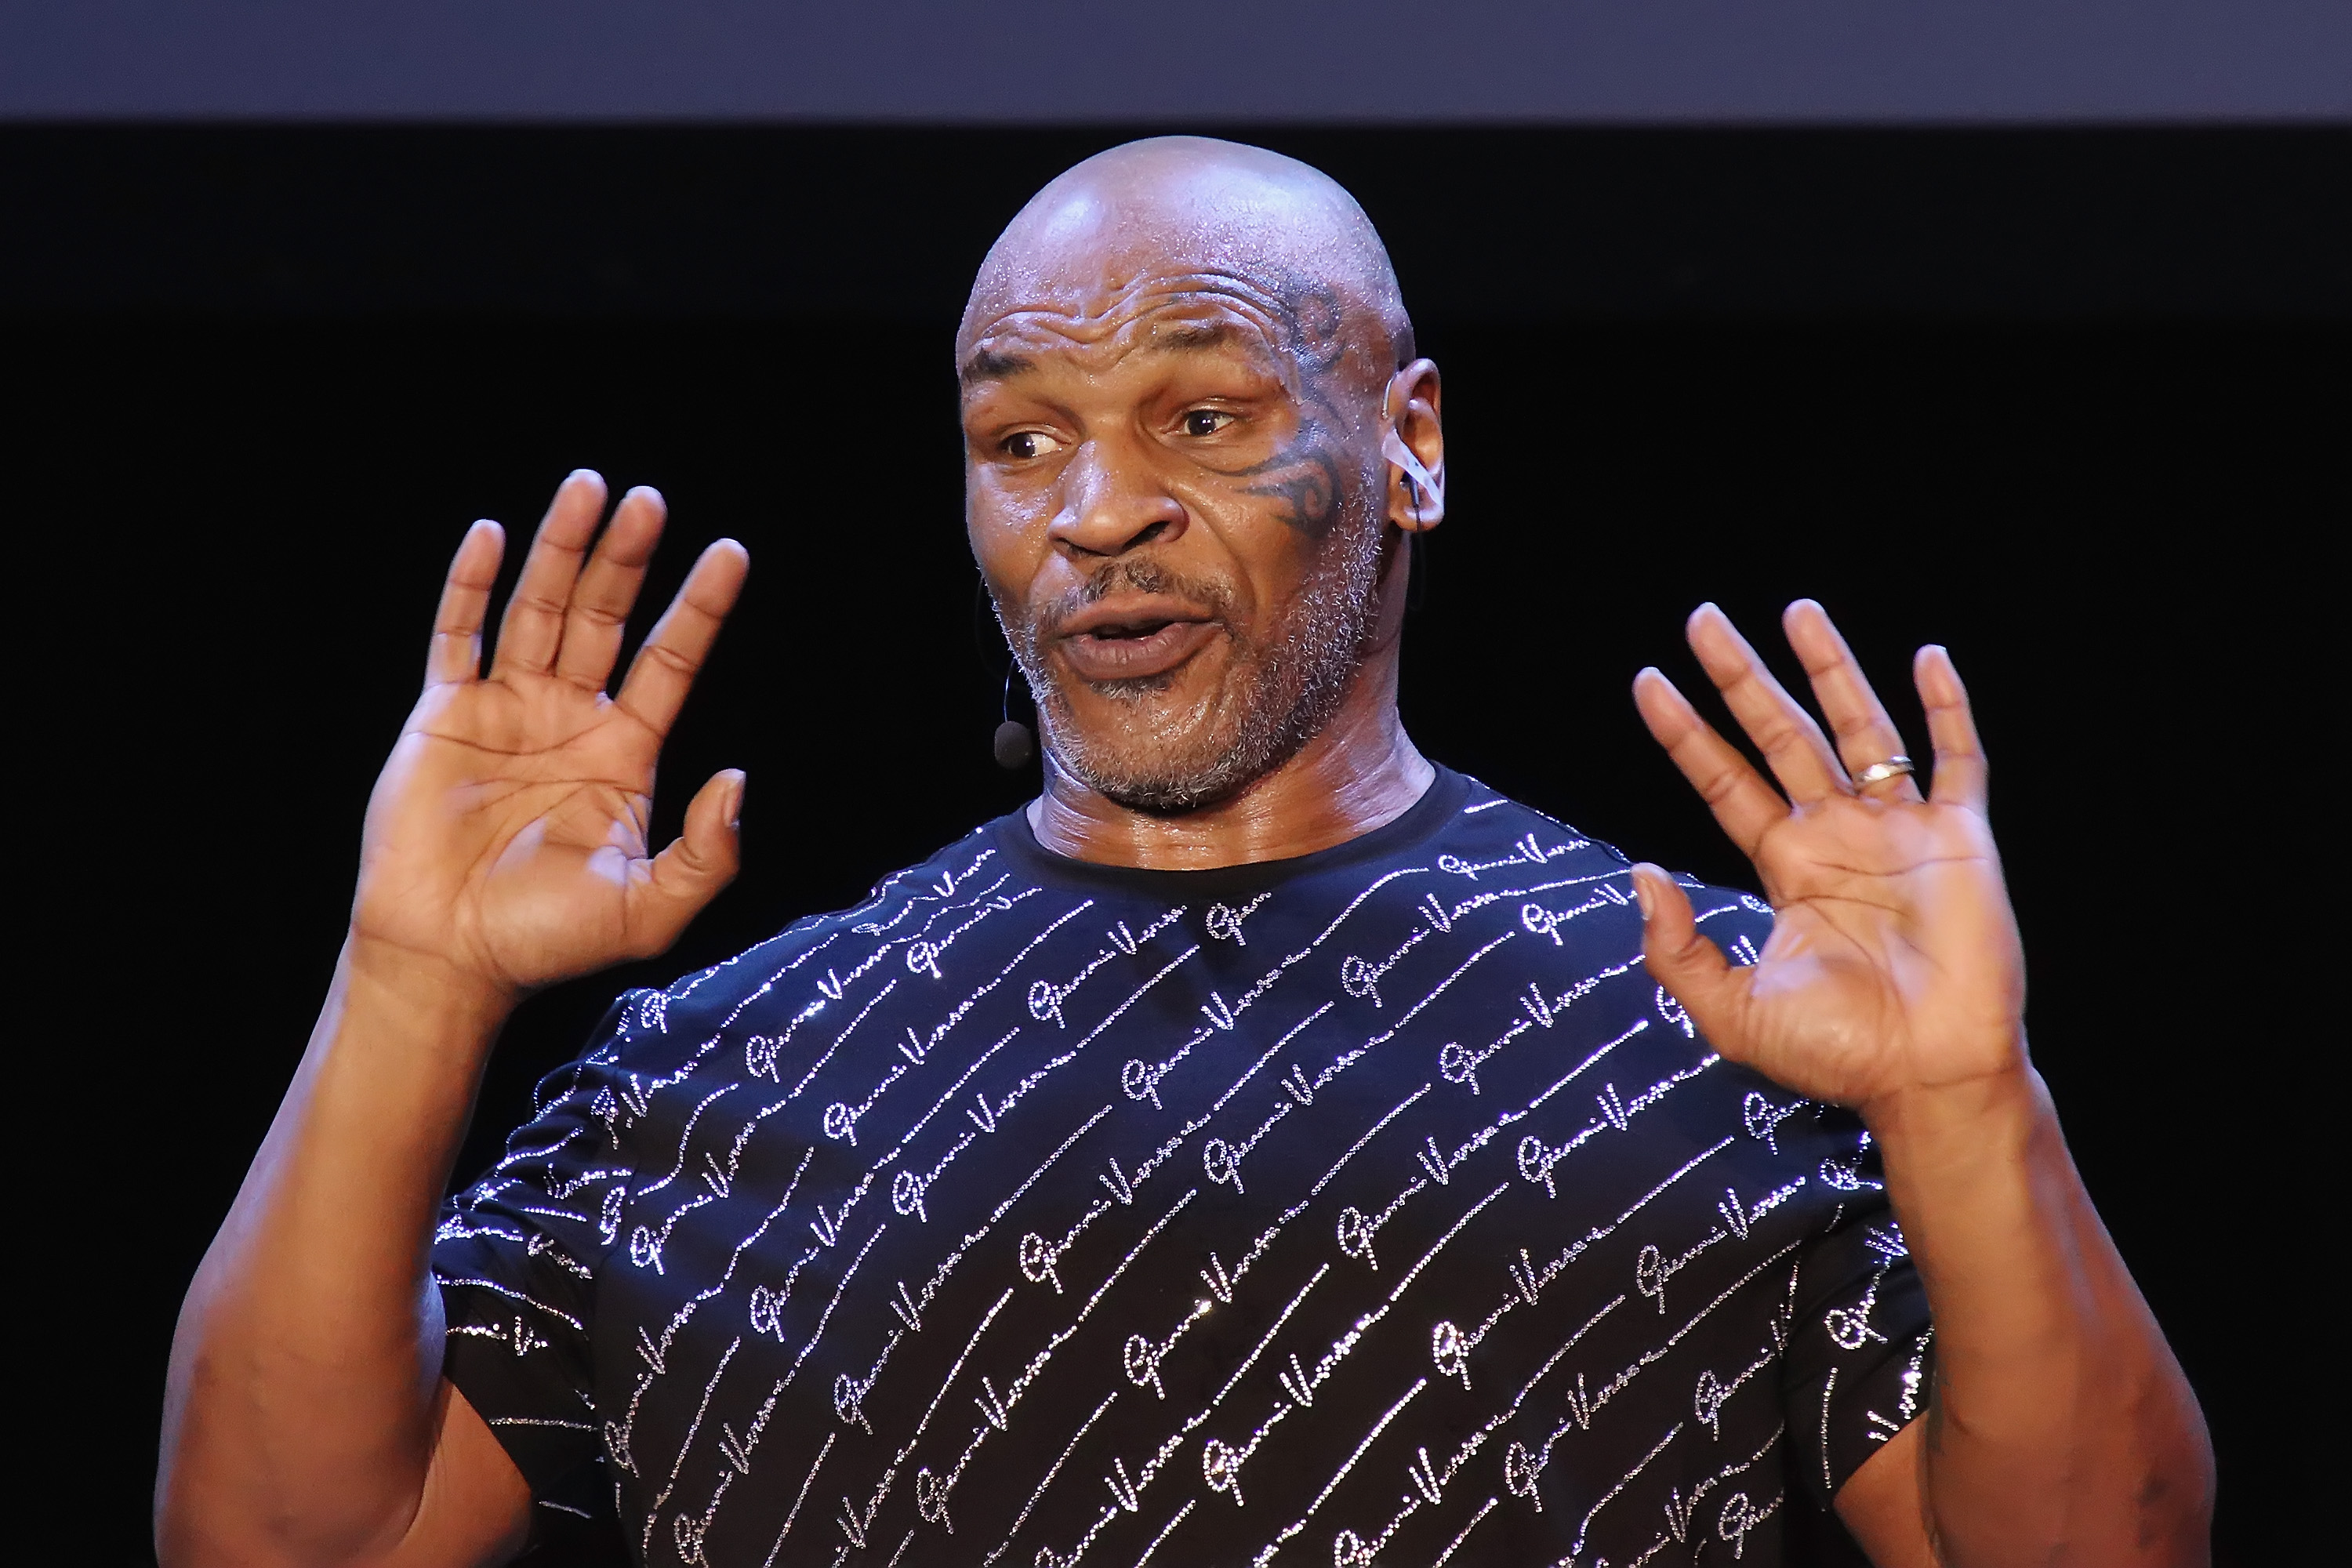 """Mike Tyson Performs His One Man Show """"Undisputed Truth"""""""